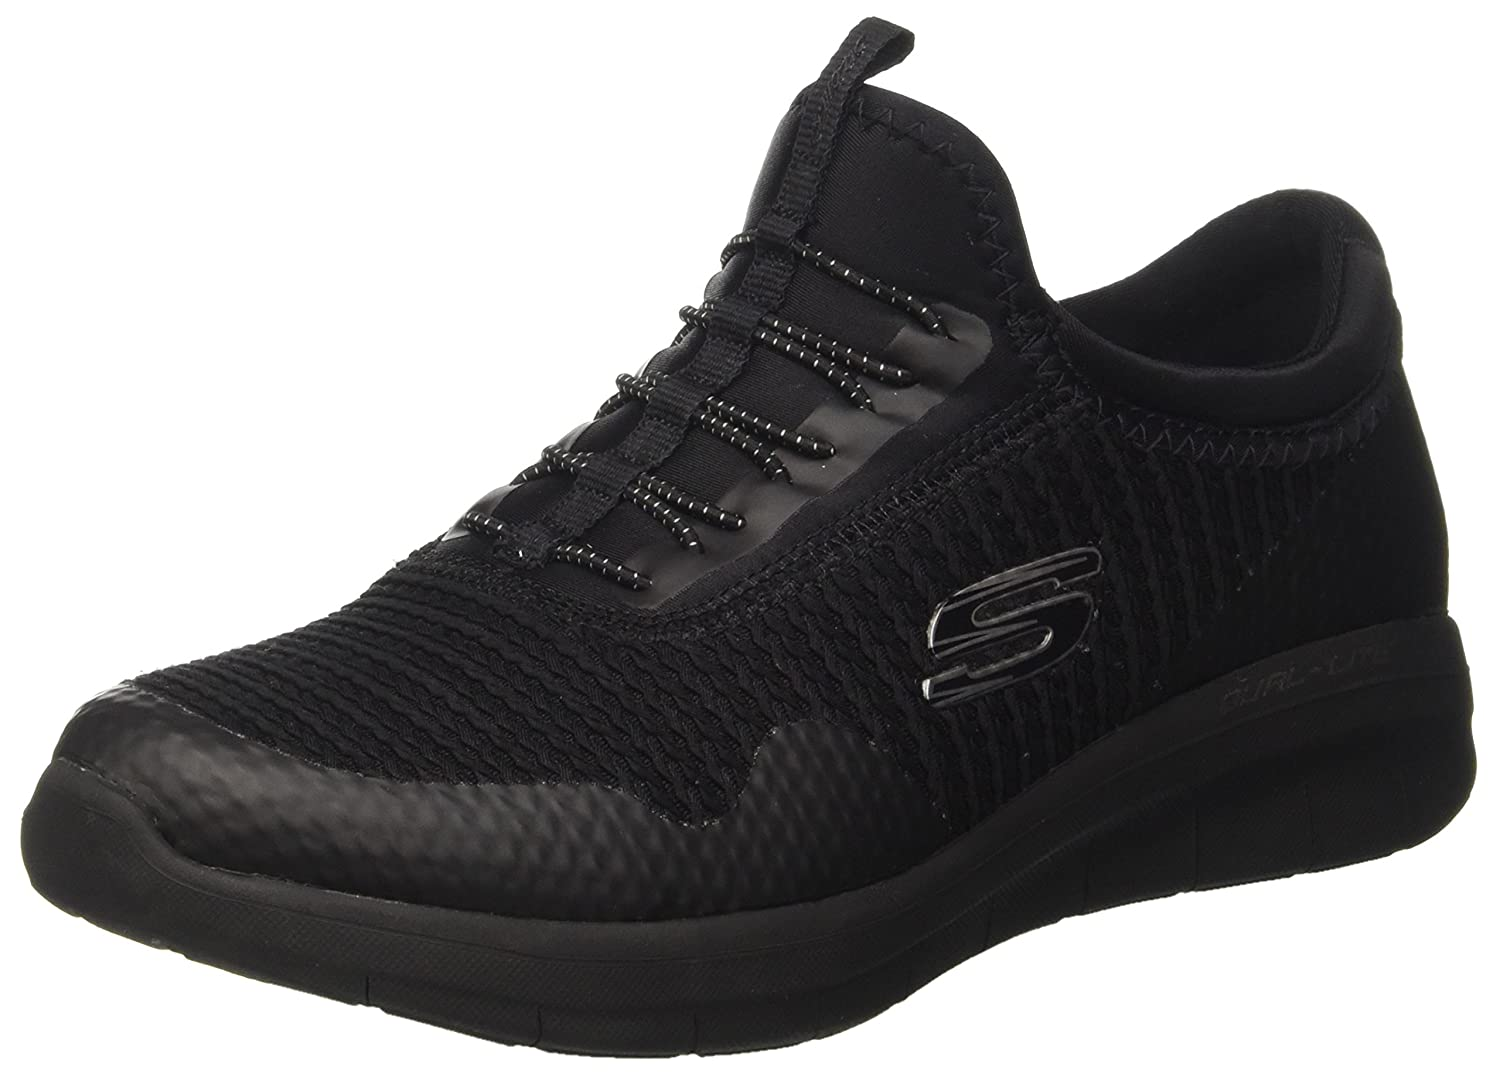 Skechers Women's Synergy 2.0-Mirror Image Fashion Sneaker B01MZC4DI5 9 B(M) US|Black